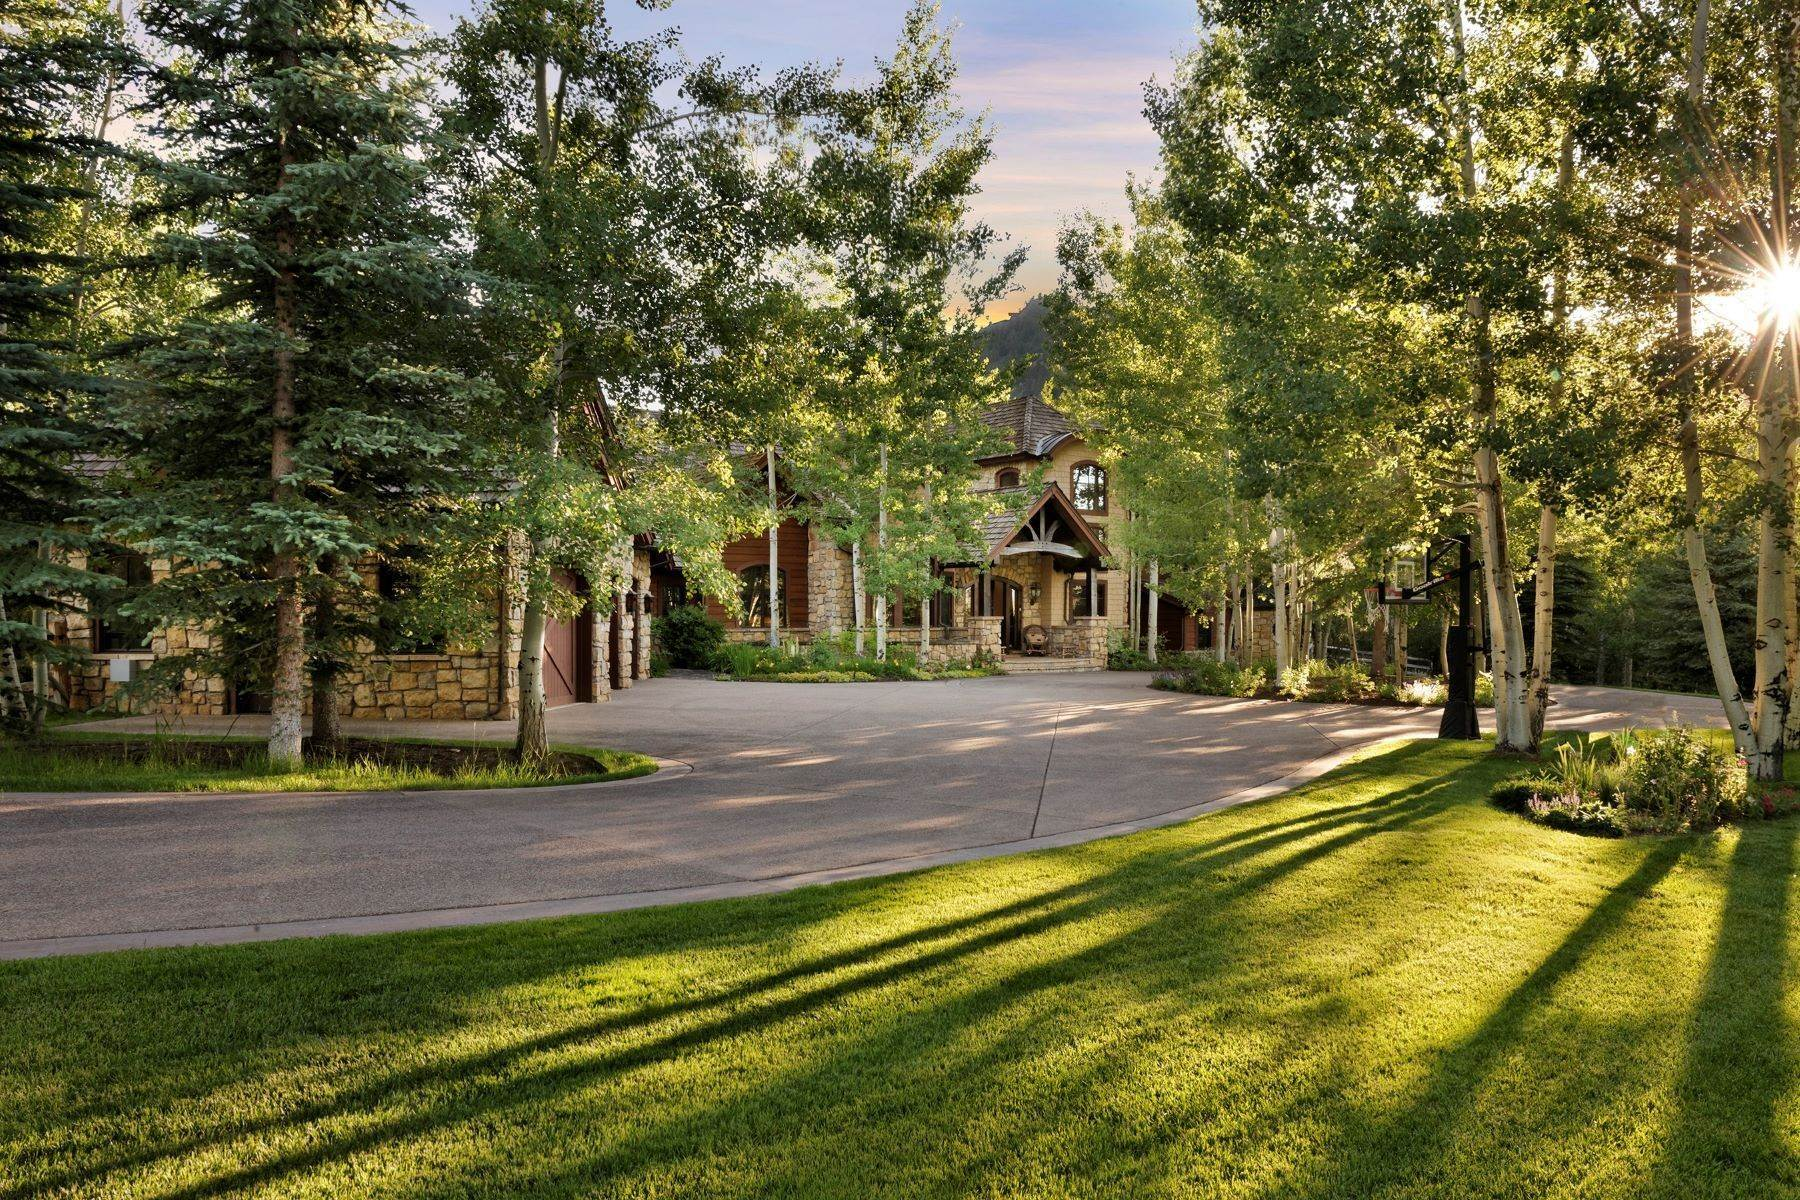 Single Family Homes for Sale at Fivetrees 15 Shavano Drive Aspen, Colorado 81611 United States